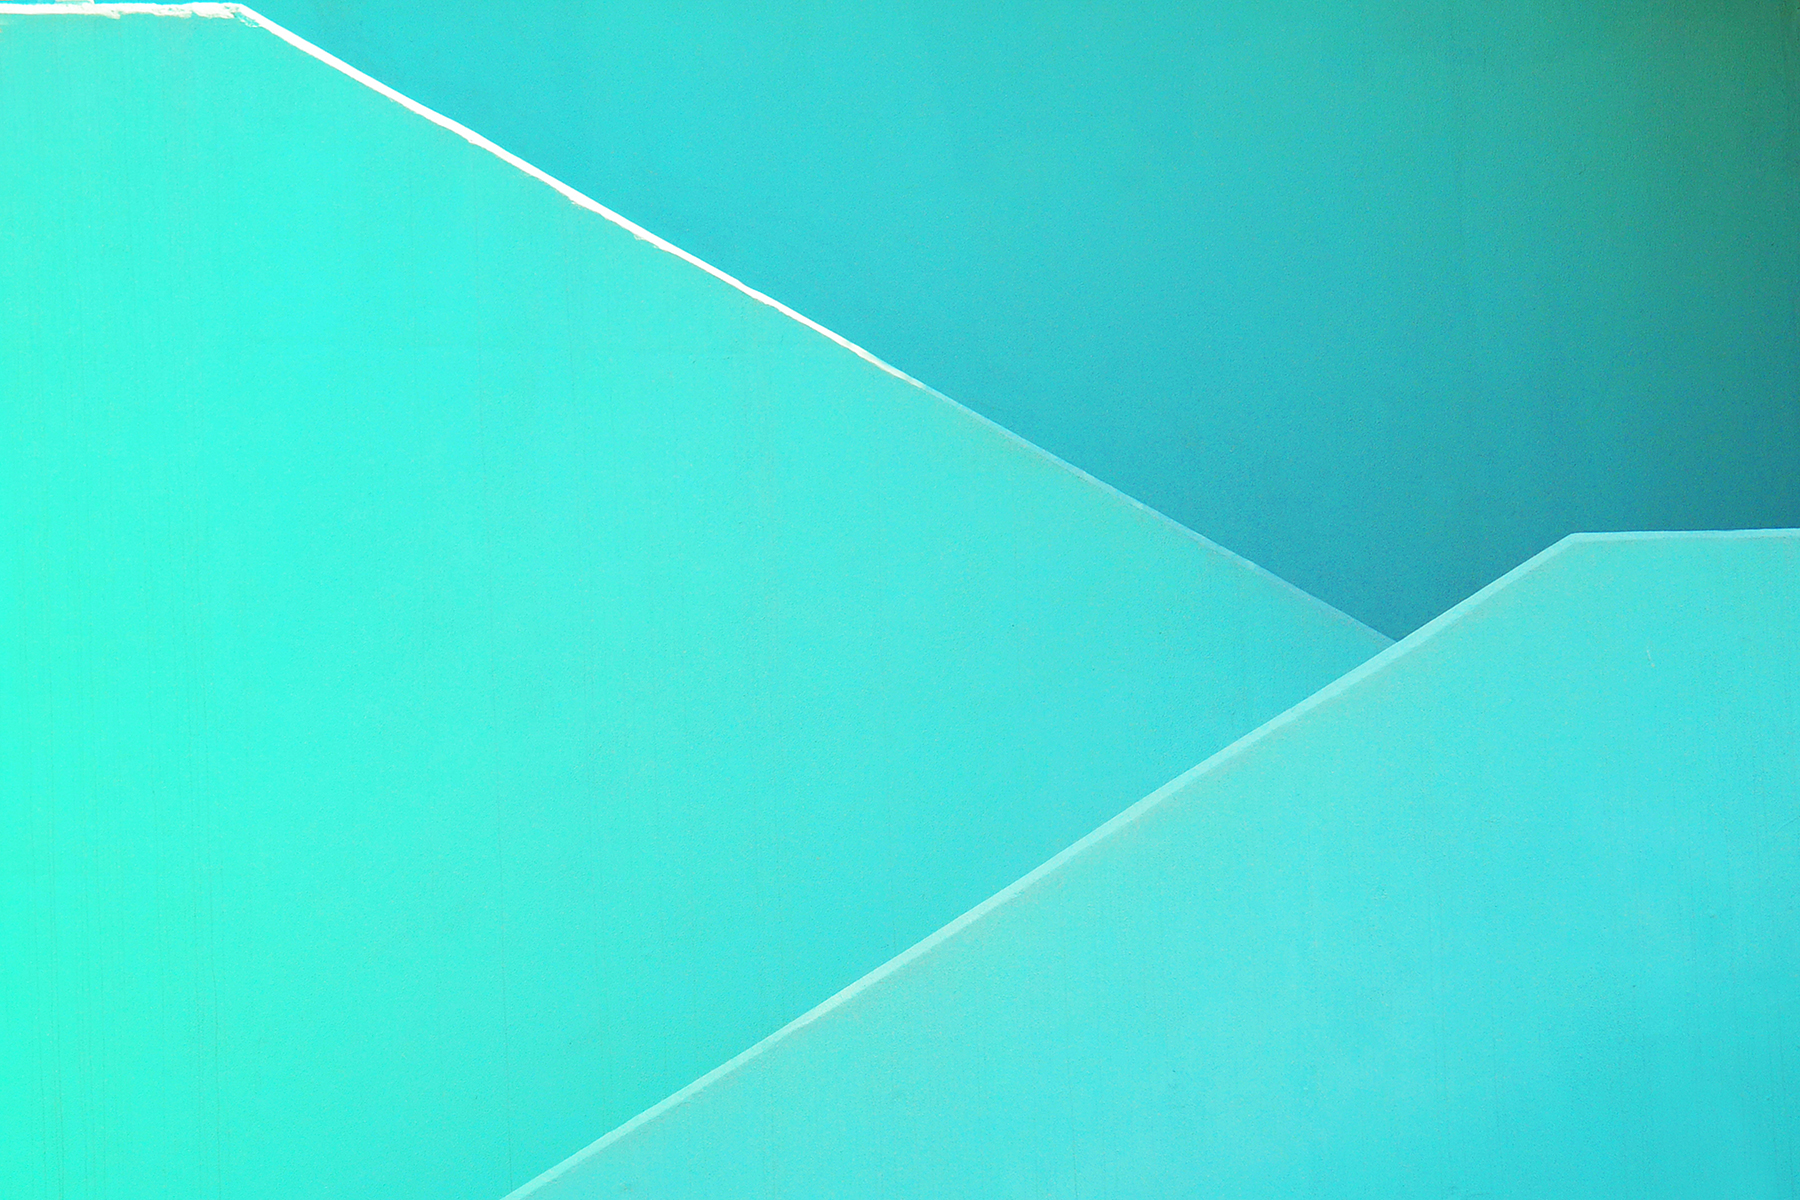 Wallpaper_Yener-_TurquoiseStairs-2